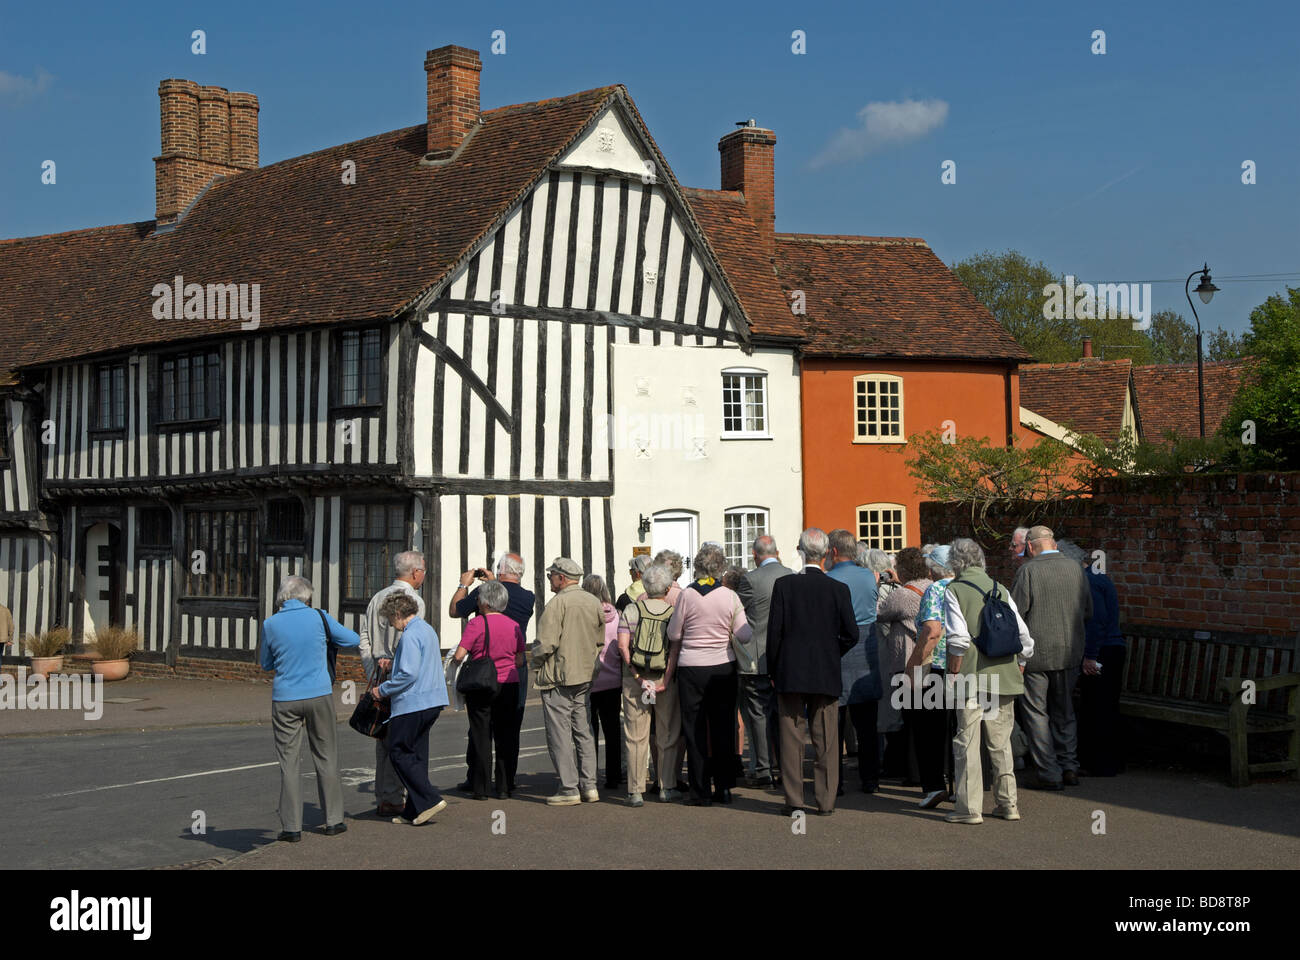 Group of tourists on a tour of Lavenham, Suffolk, UK. Stock Photo